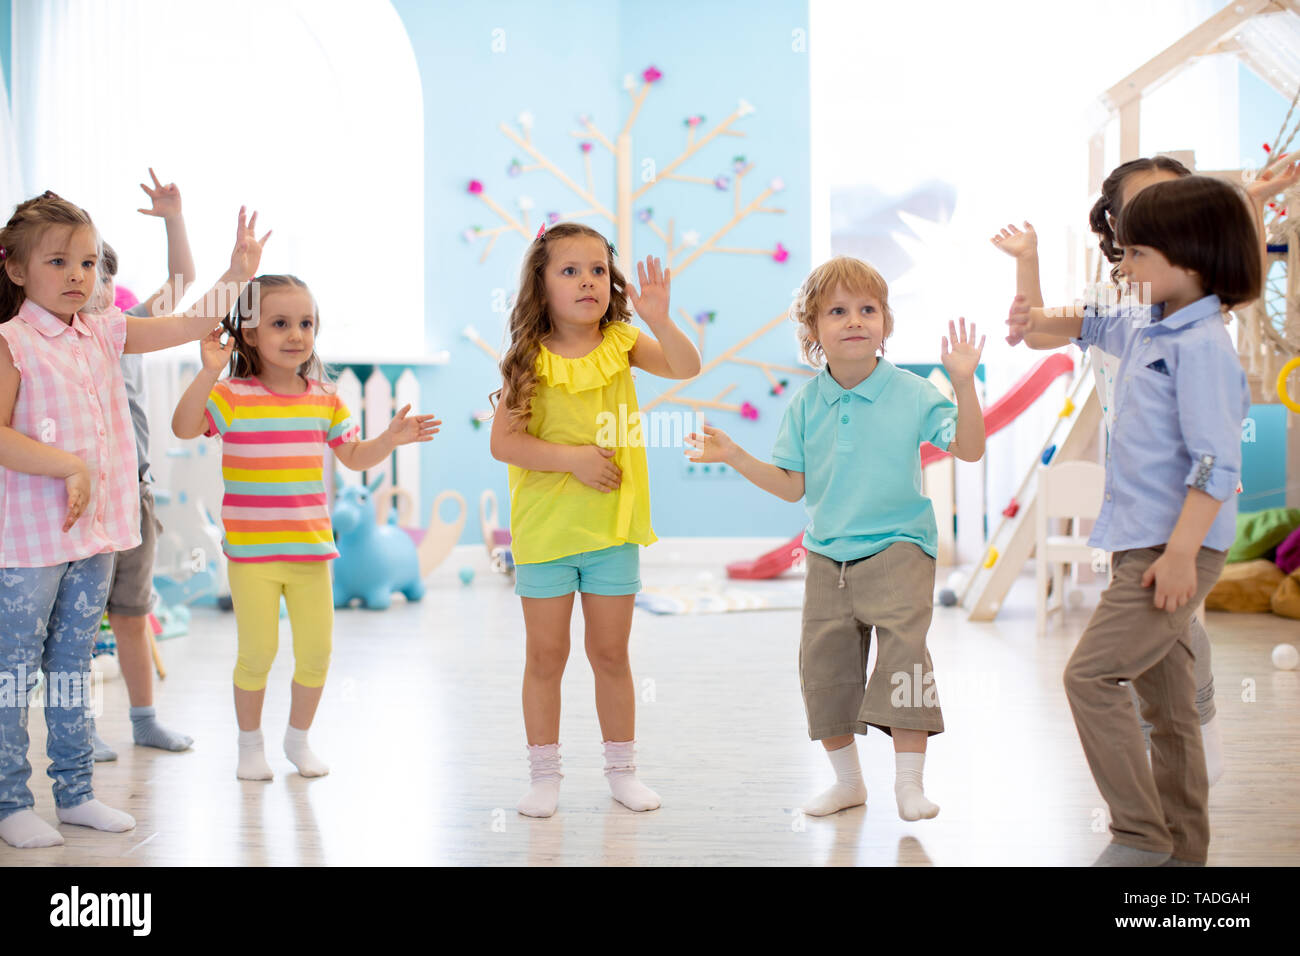 Happy children having fun dancing indoors in a sunny room at day care or entertainment center - Stock Image